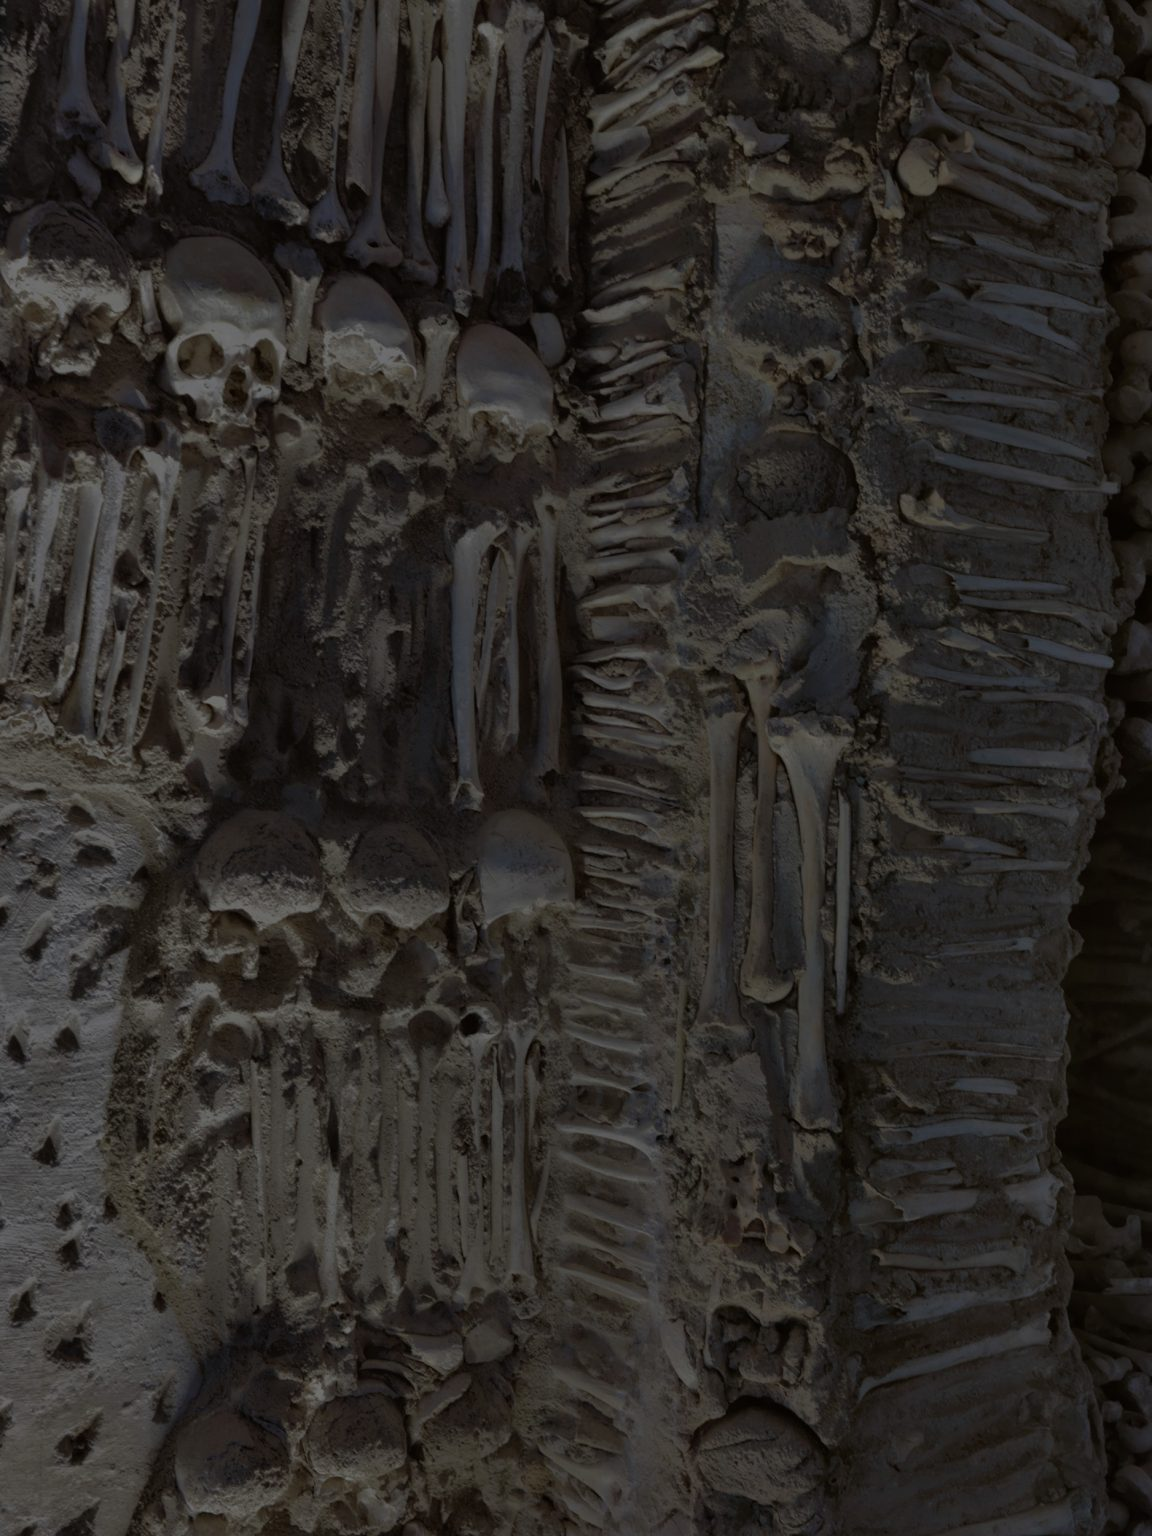 """Portugal, Alentejo, Evora, Capela dos Ossos - November 2016  The interior walls of the Chapel are covered and decorated with human skulls and bones. At the entrance a warning says """"We bones that here are, for yours await""""   """"Where are you going in such a hurry traveler? Stop … do not proceed; You have no greater concern, Than this one: that on which you focus your sight.  Recall how many have passed from this world, Reflect on your similar end, There is good reason to reflect If only all did the same.  Ponder, you so influenced by fate, Among the many concerns of the world, So little do you reflect on death;  If by chance you glance at this place, Stop … for the sake of your journey, The more you pause, the further on your journey you will be.""""  by Fr. António da Ascenção"""